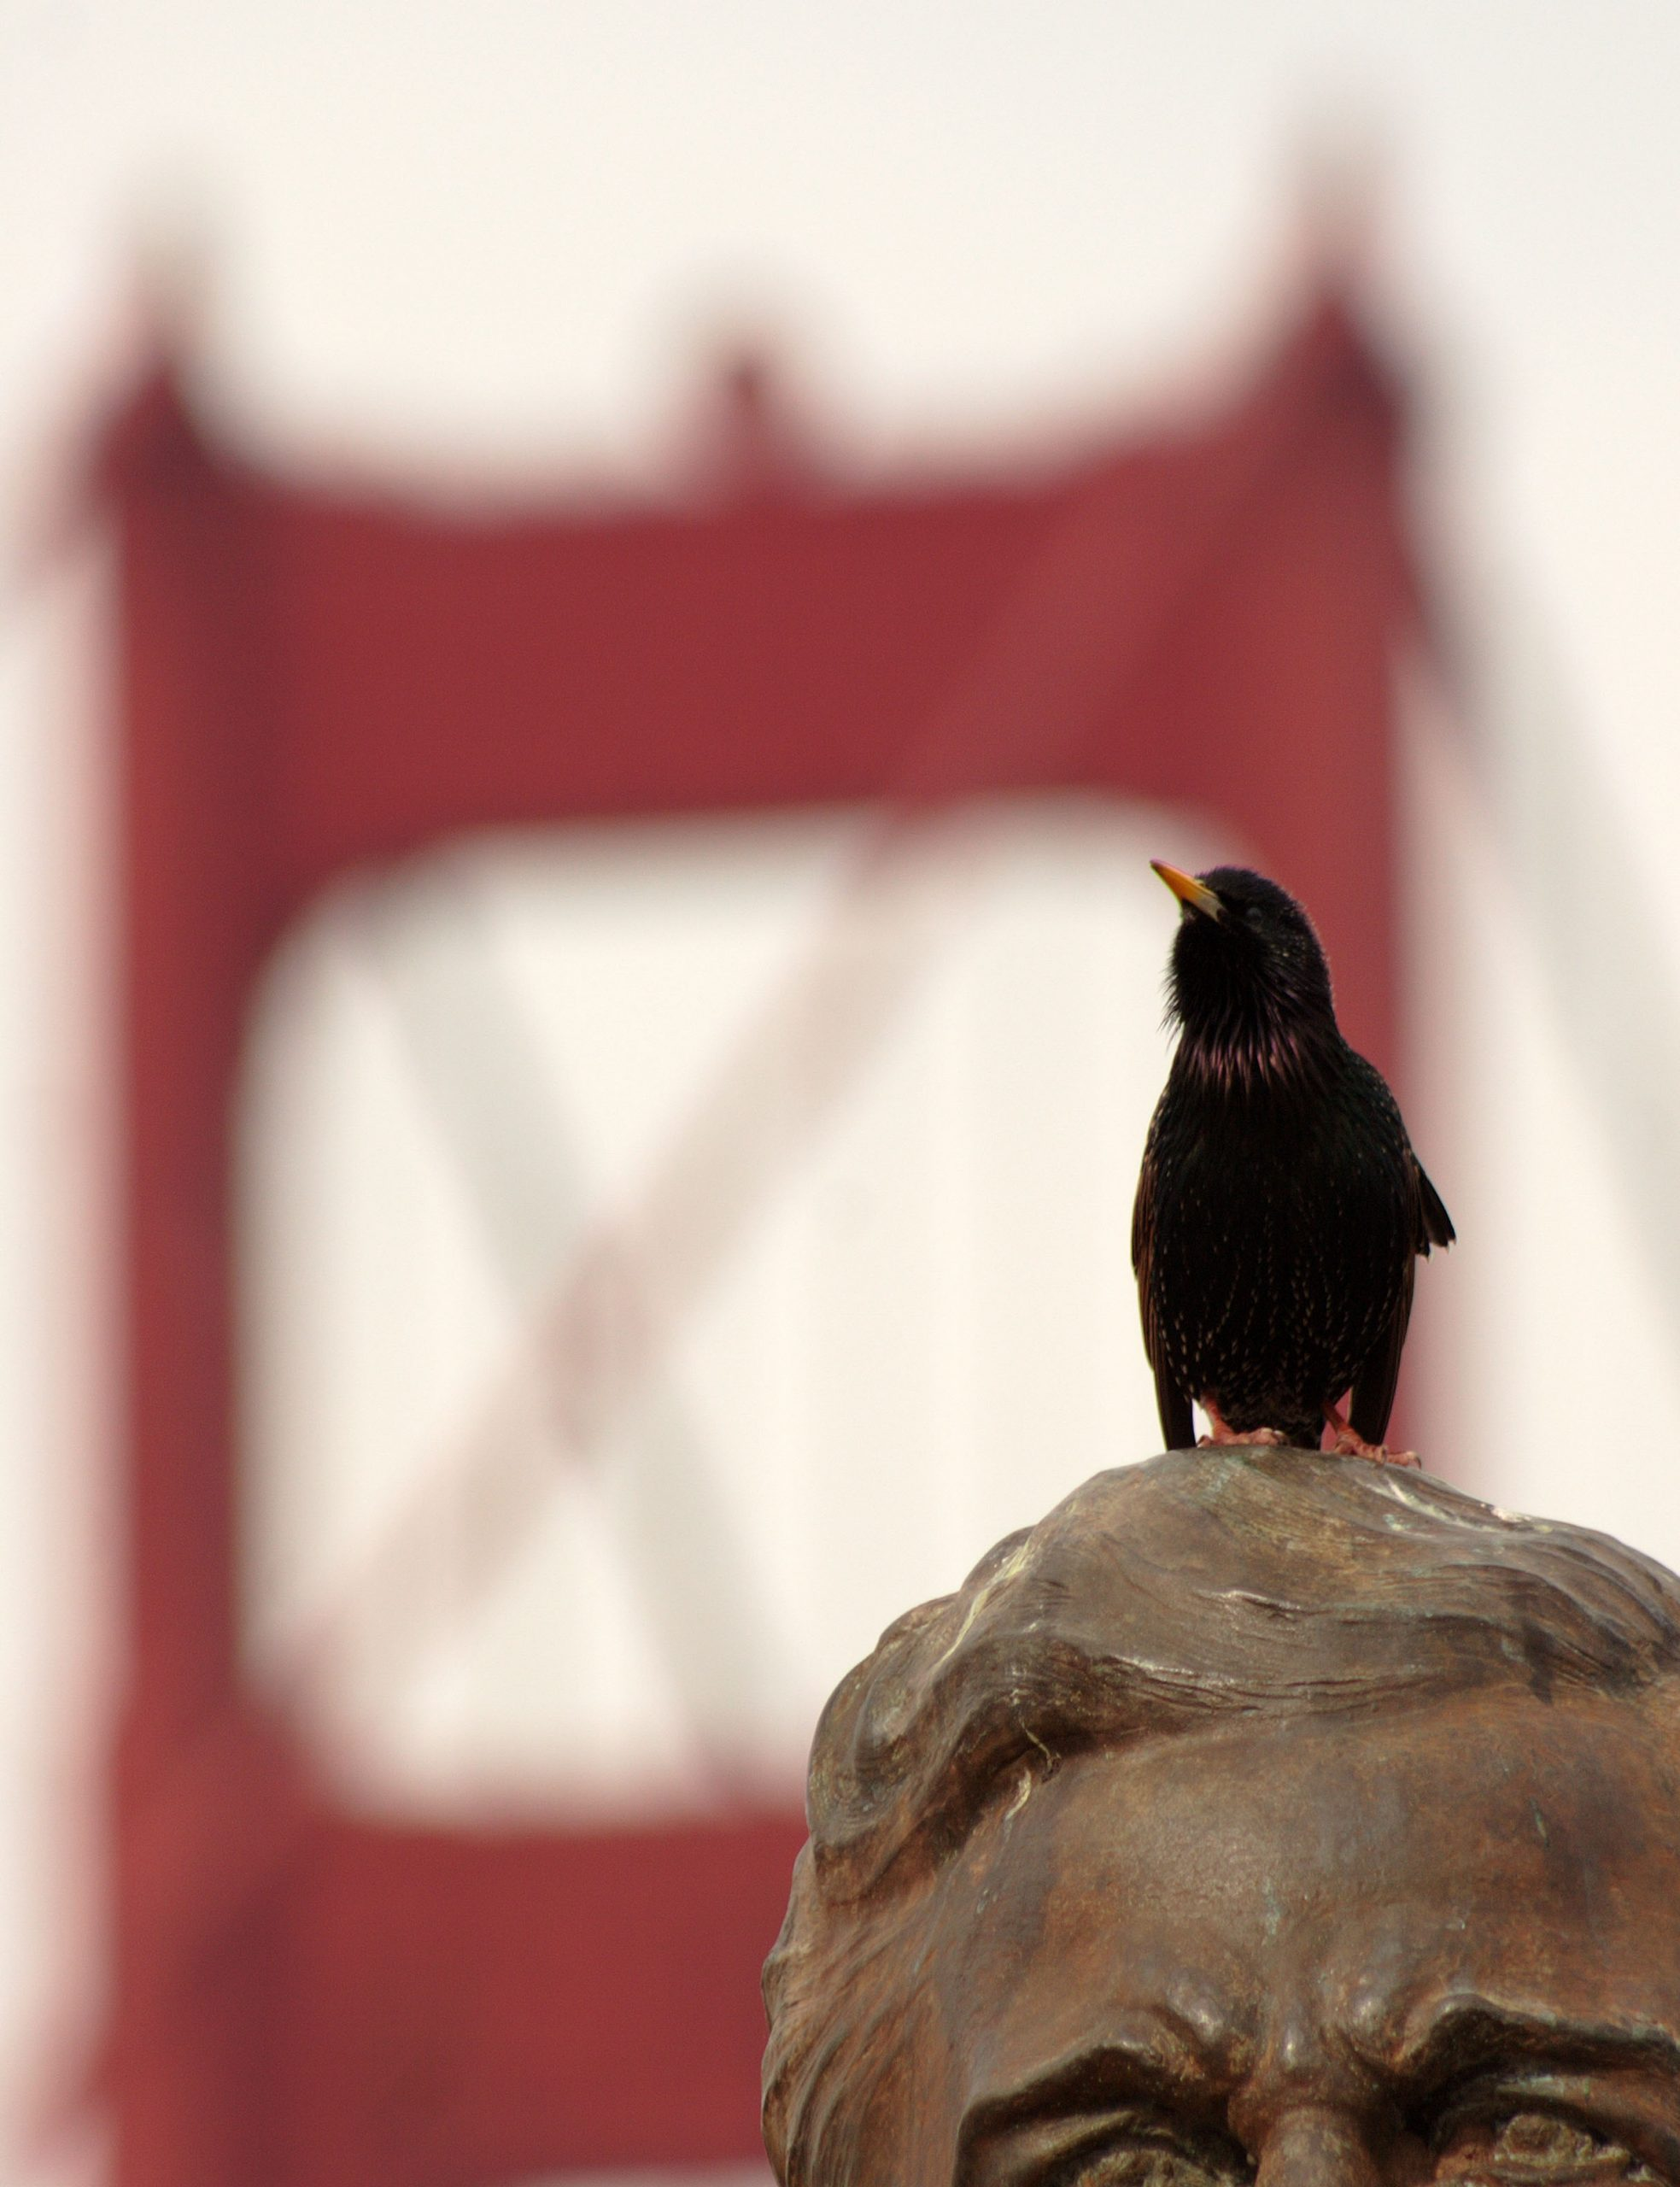 A male European starling sits on a statue and sings in San Francisco, with the Golden Gate Bridge in the background.